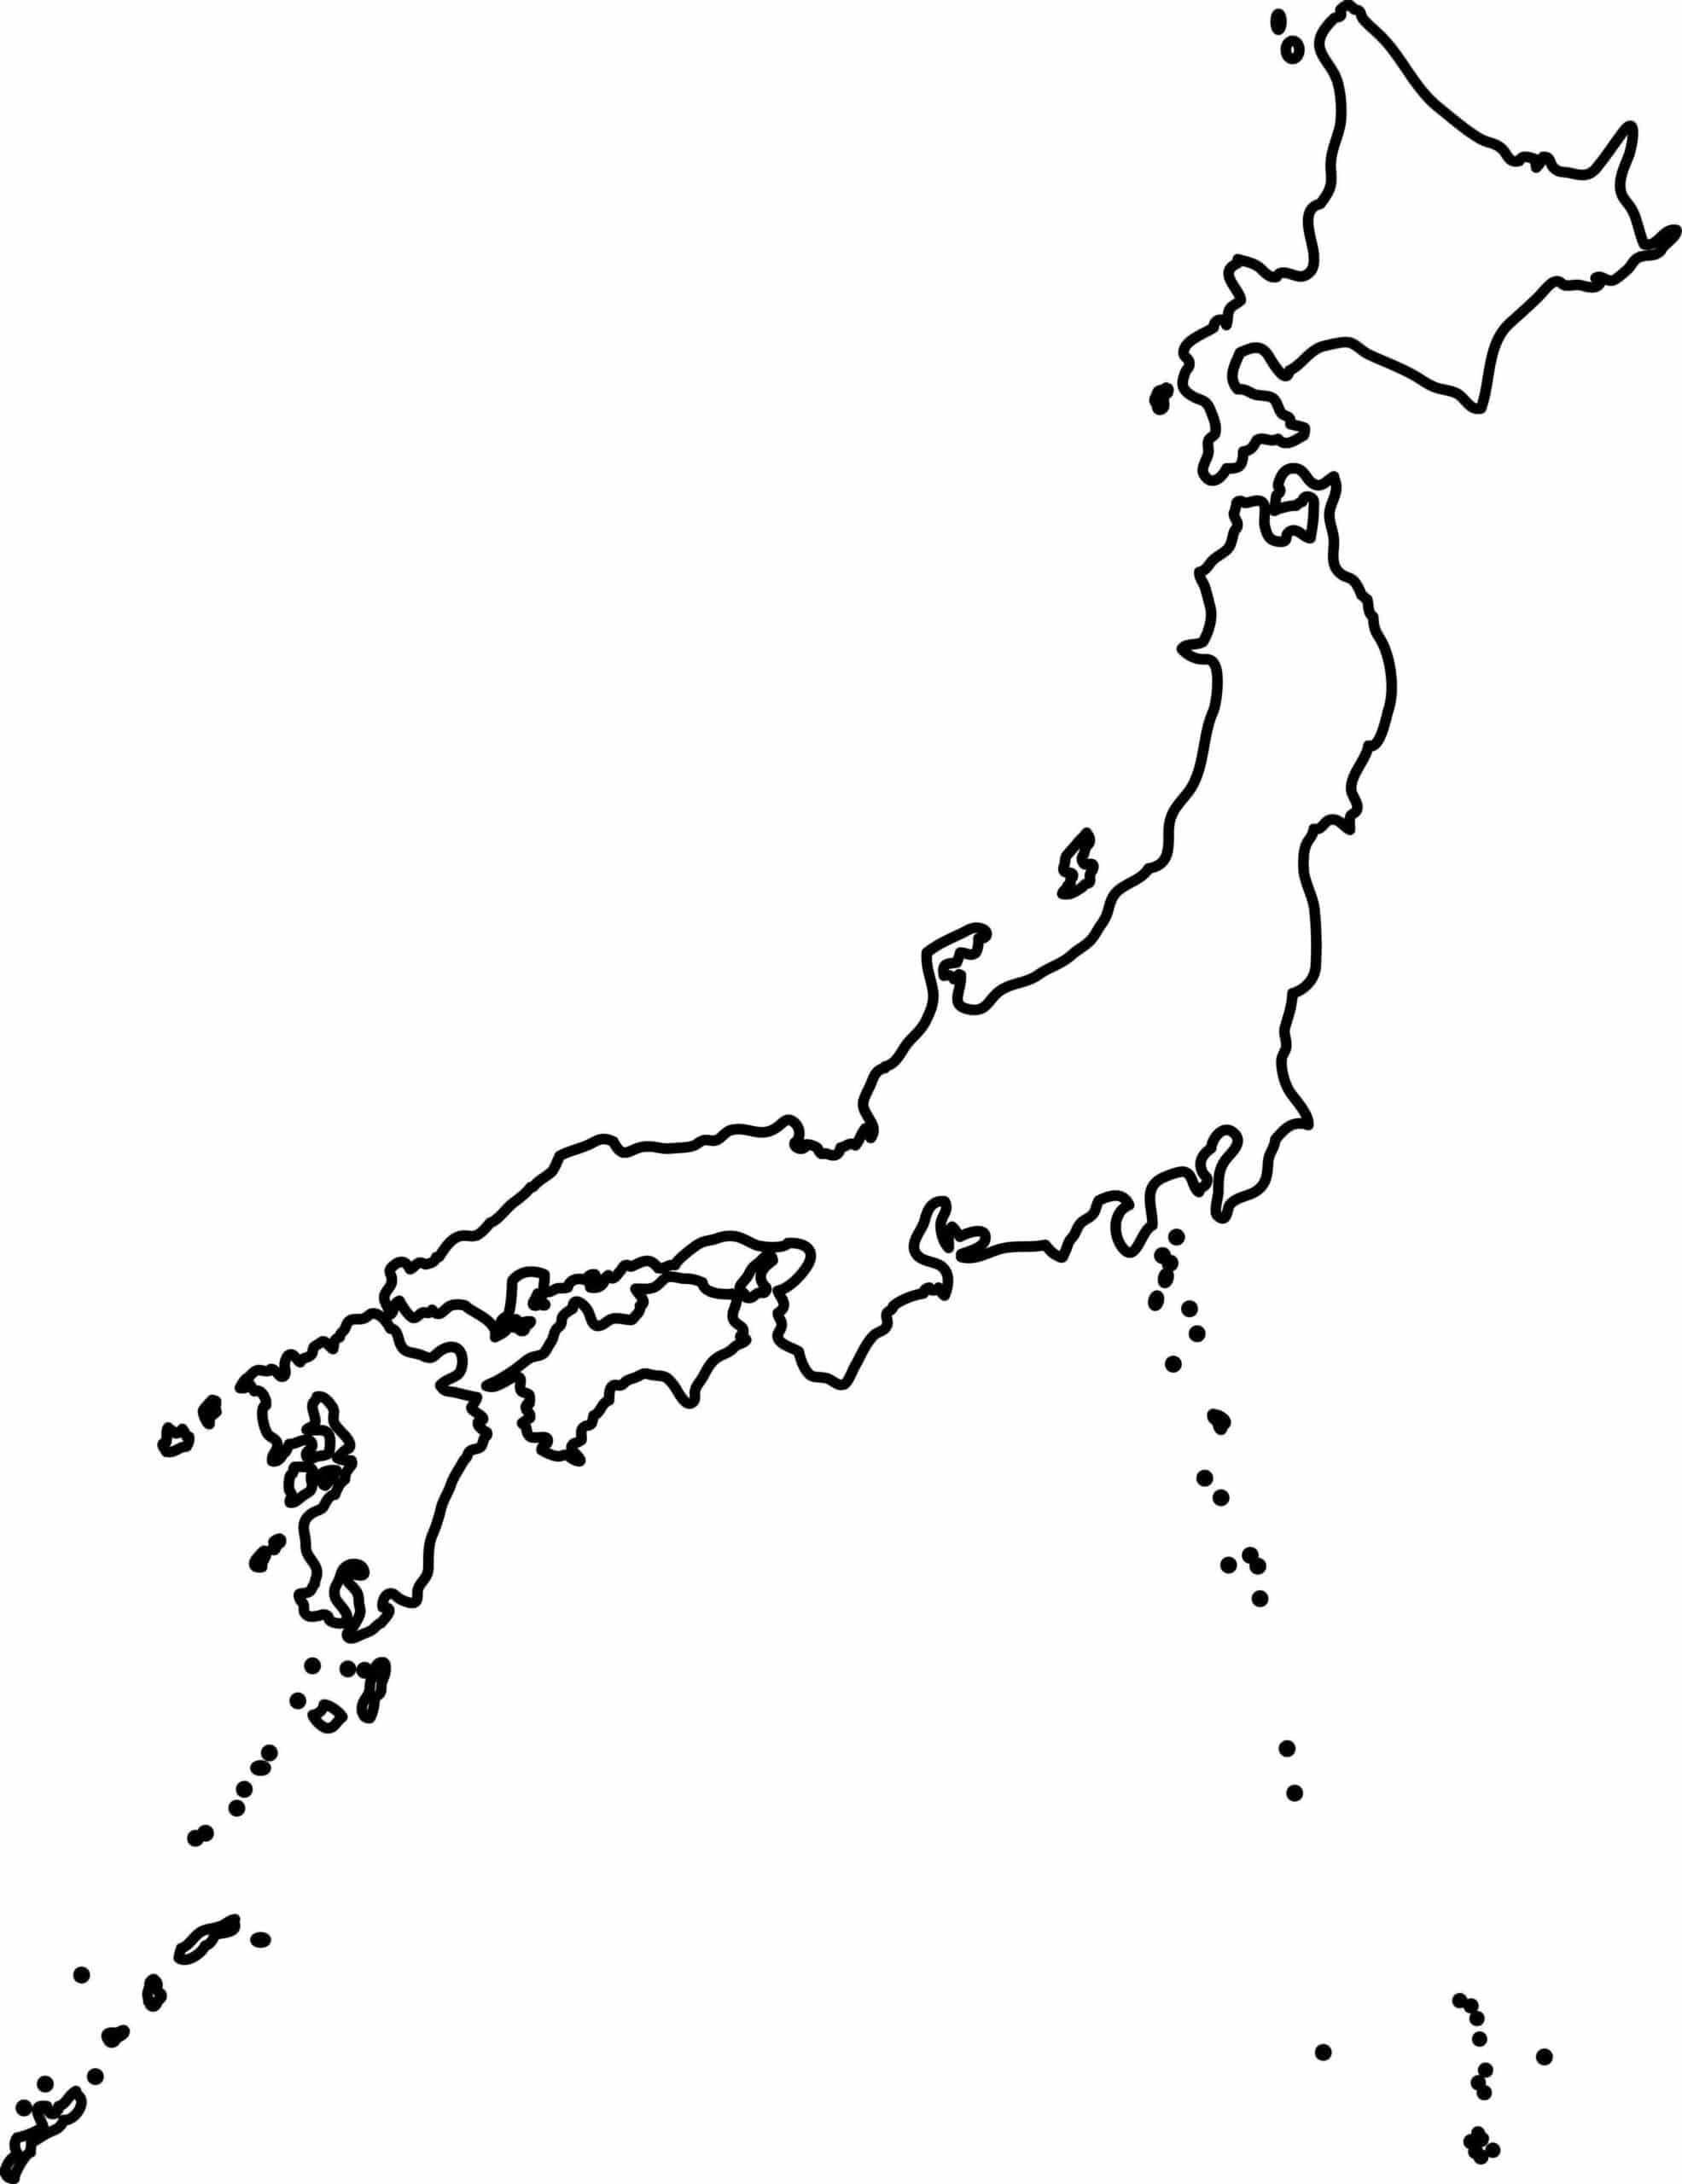 Outline map of Japan